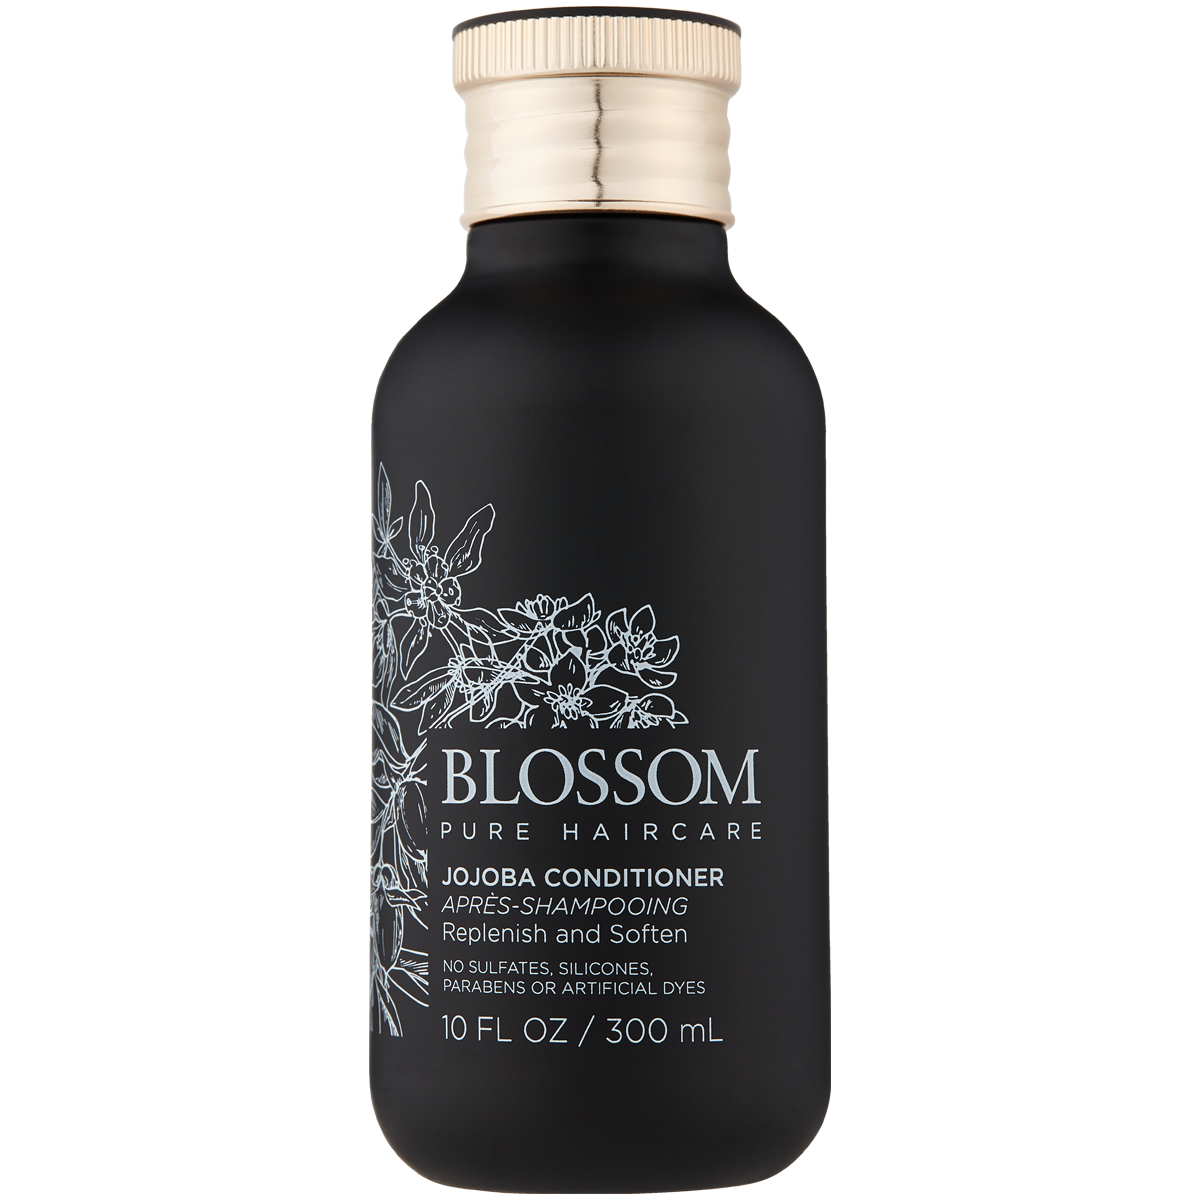 Blossom Pure Haircare Jojoba Conditioner